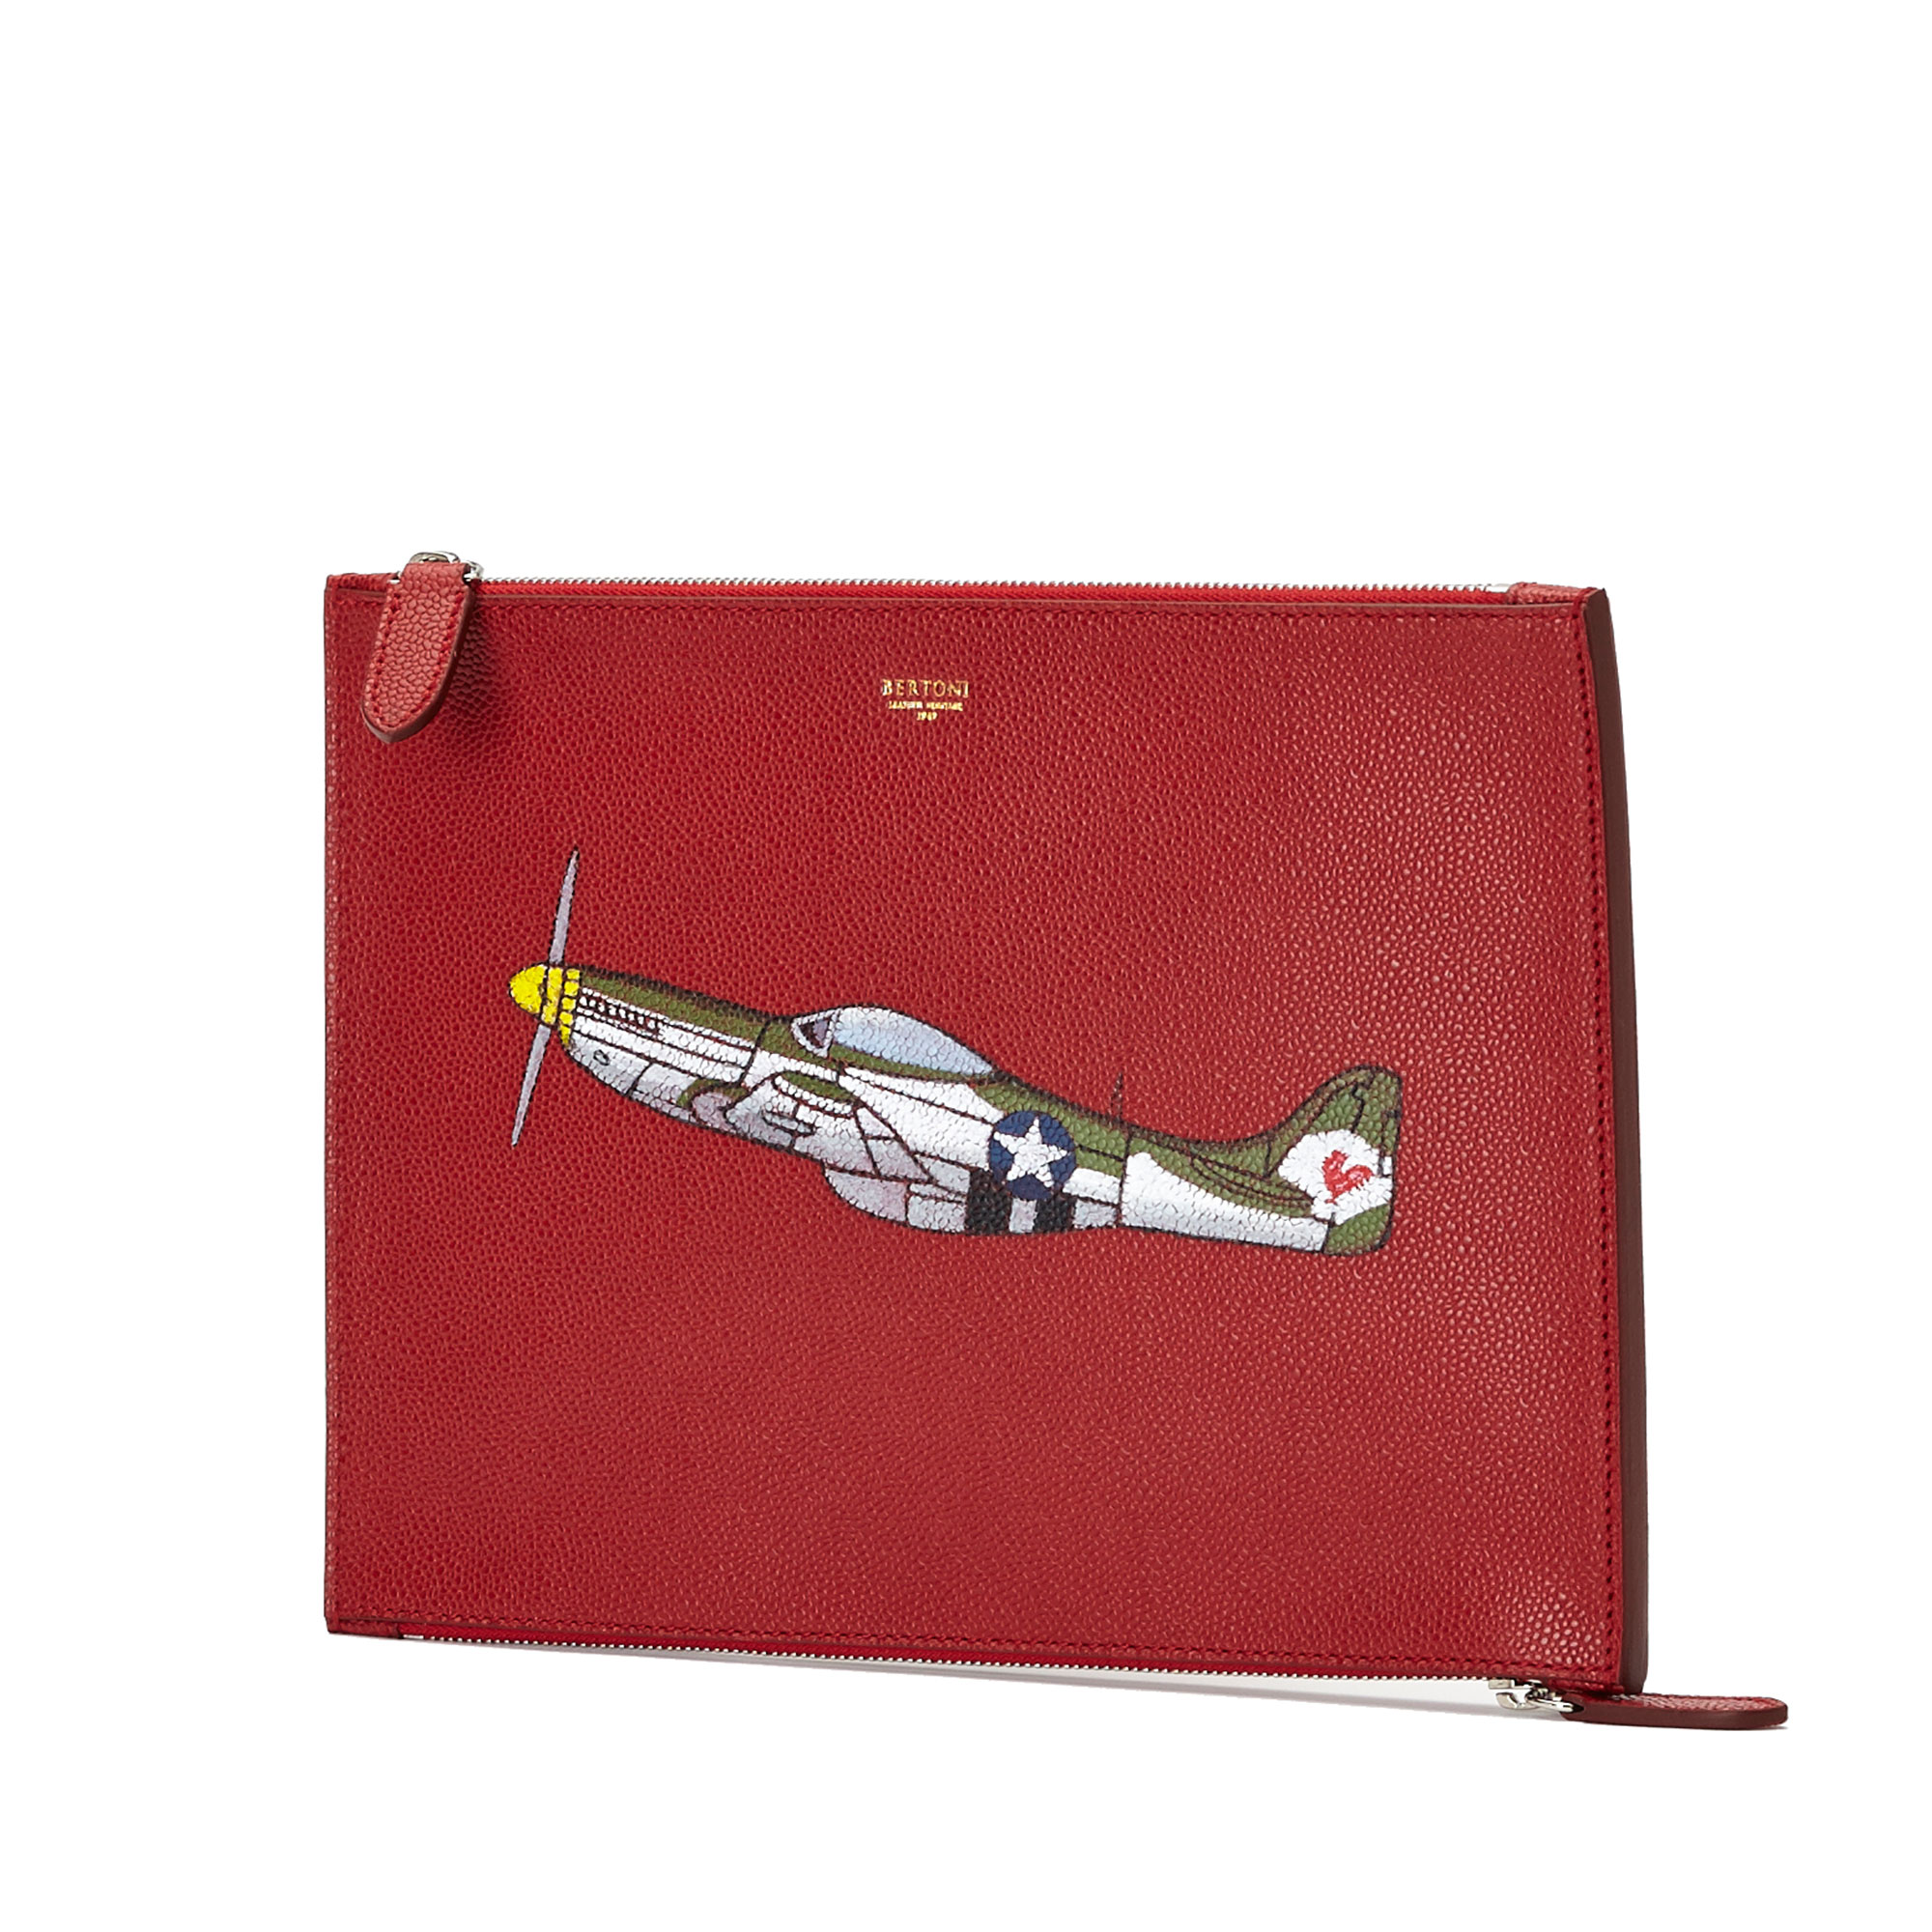 The red french calf with hand painted aeroplane Zip Pouch by Bertoni 1949 02